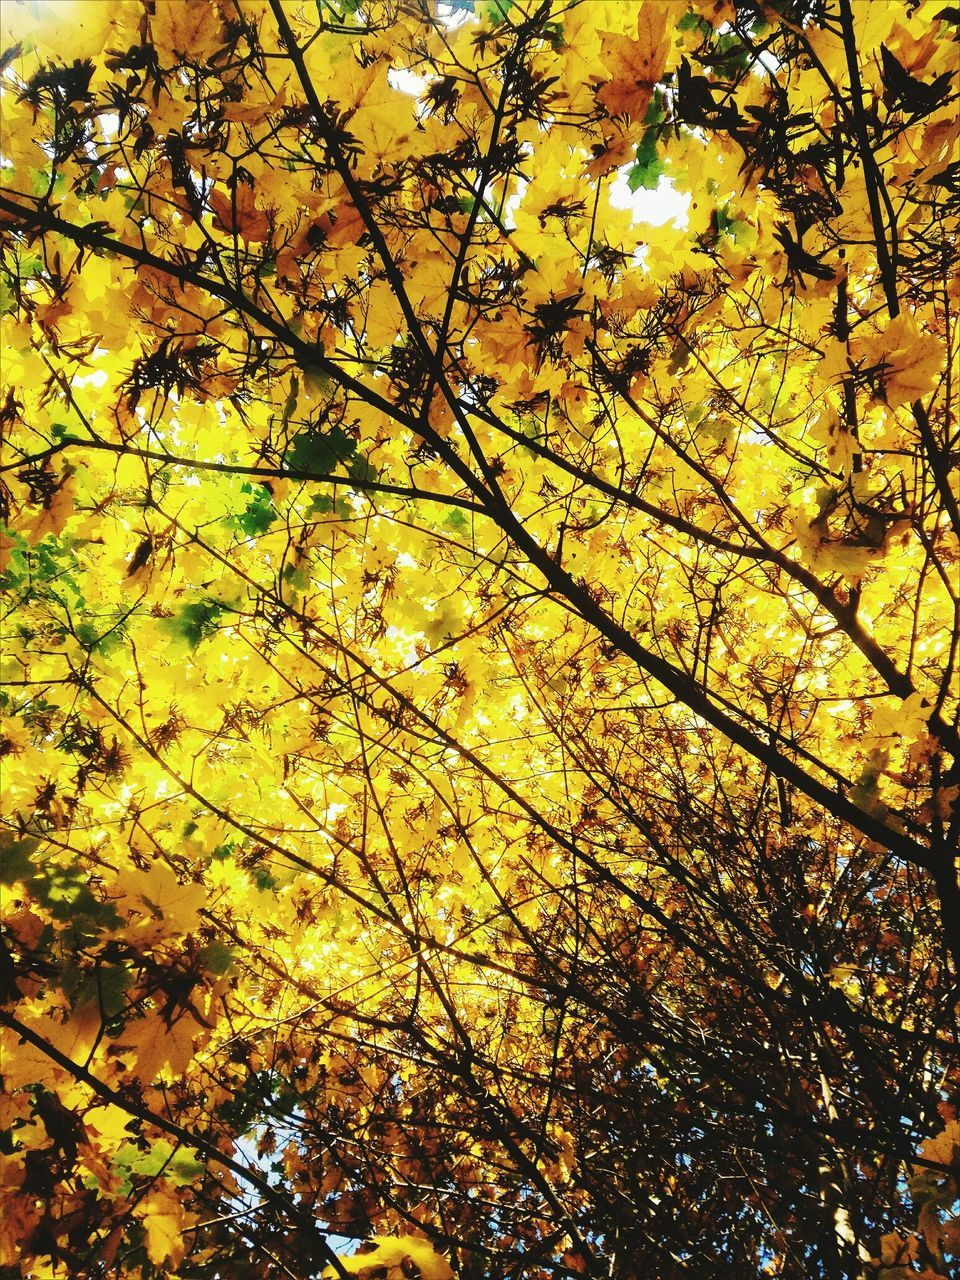 nature, beauty in nature, tree, low angle view, branch, growth, autumn, leaf, outdoors, no people, day, yellow, tranquility, backgrounds, scenics, freshness